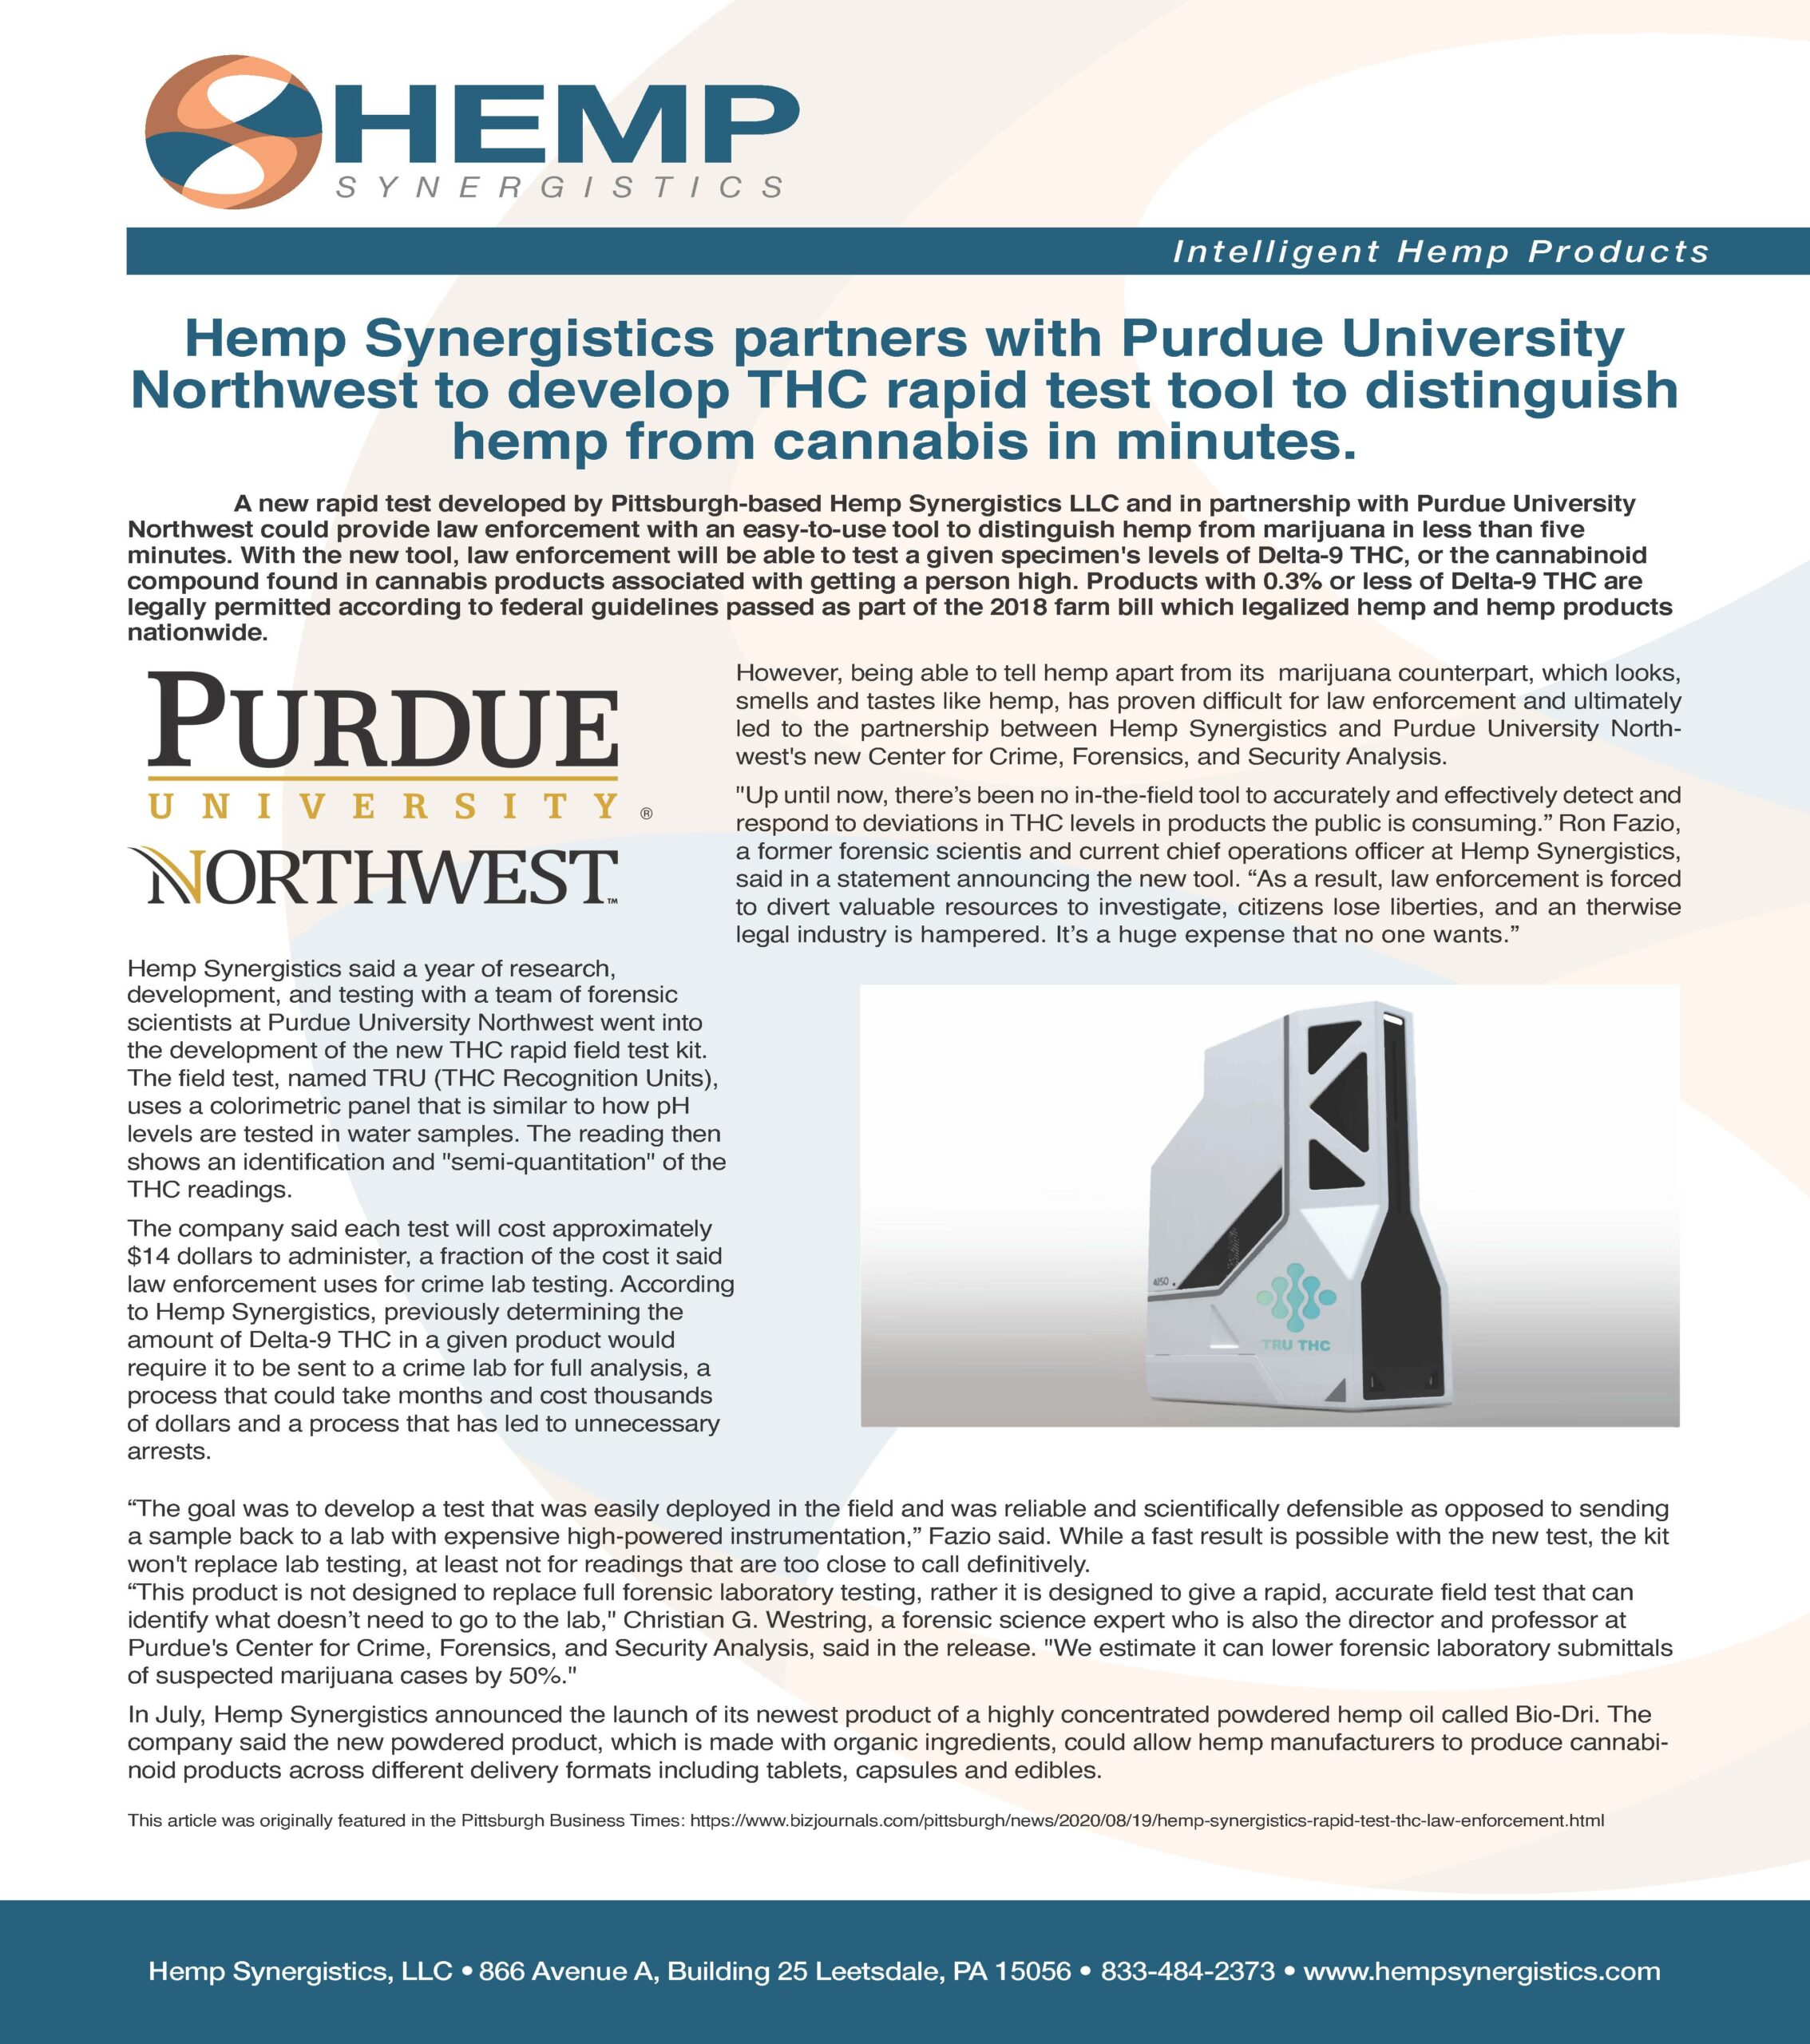 Hemp Synergistics partners with Purdue University Northwest to develop THC rapid test tool to distinguish hemp from cannabis in minutes